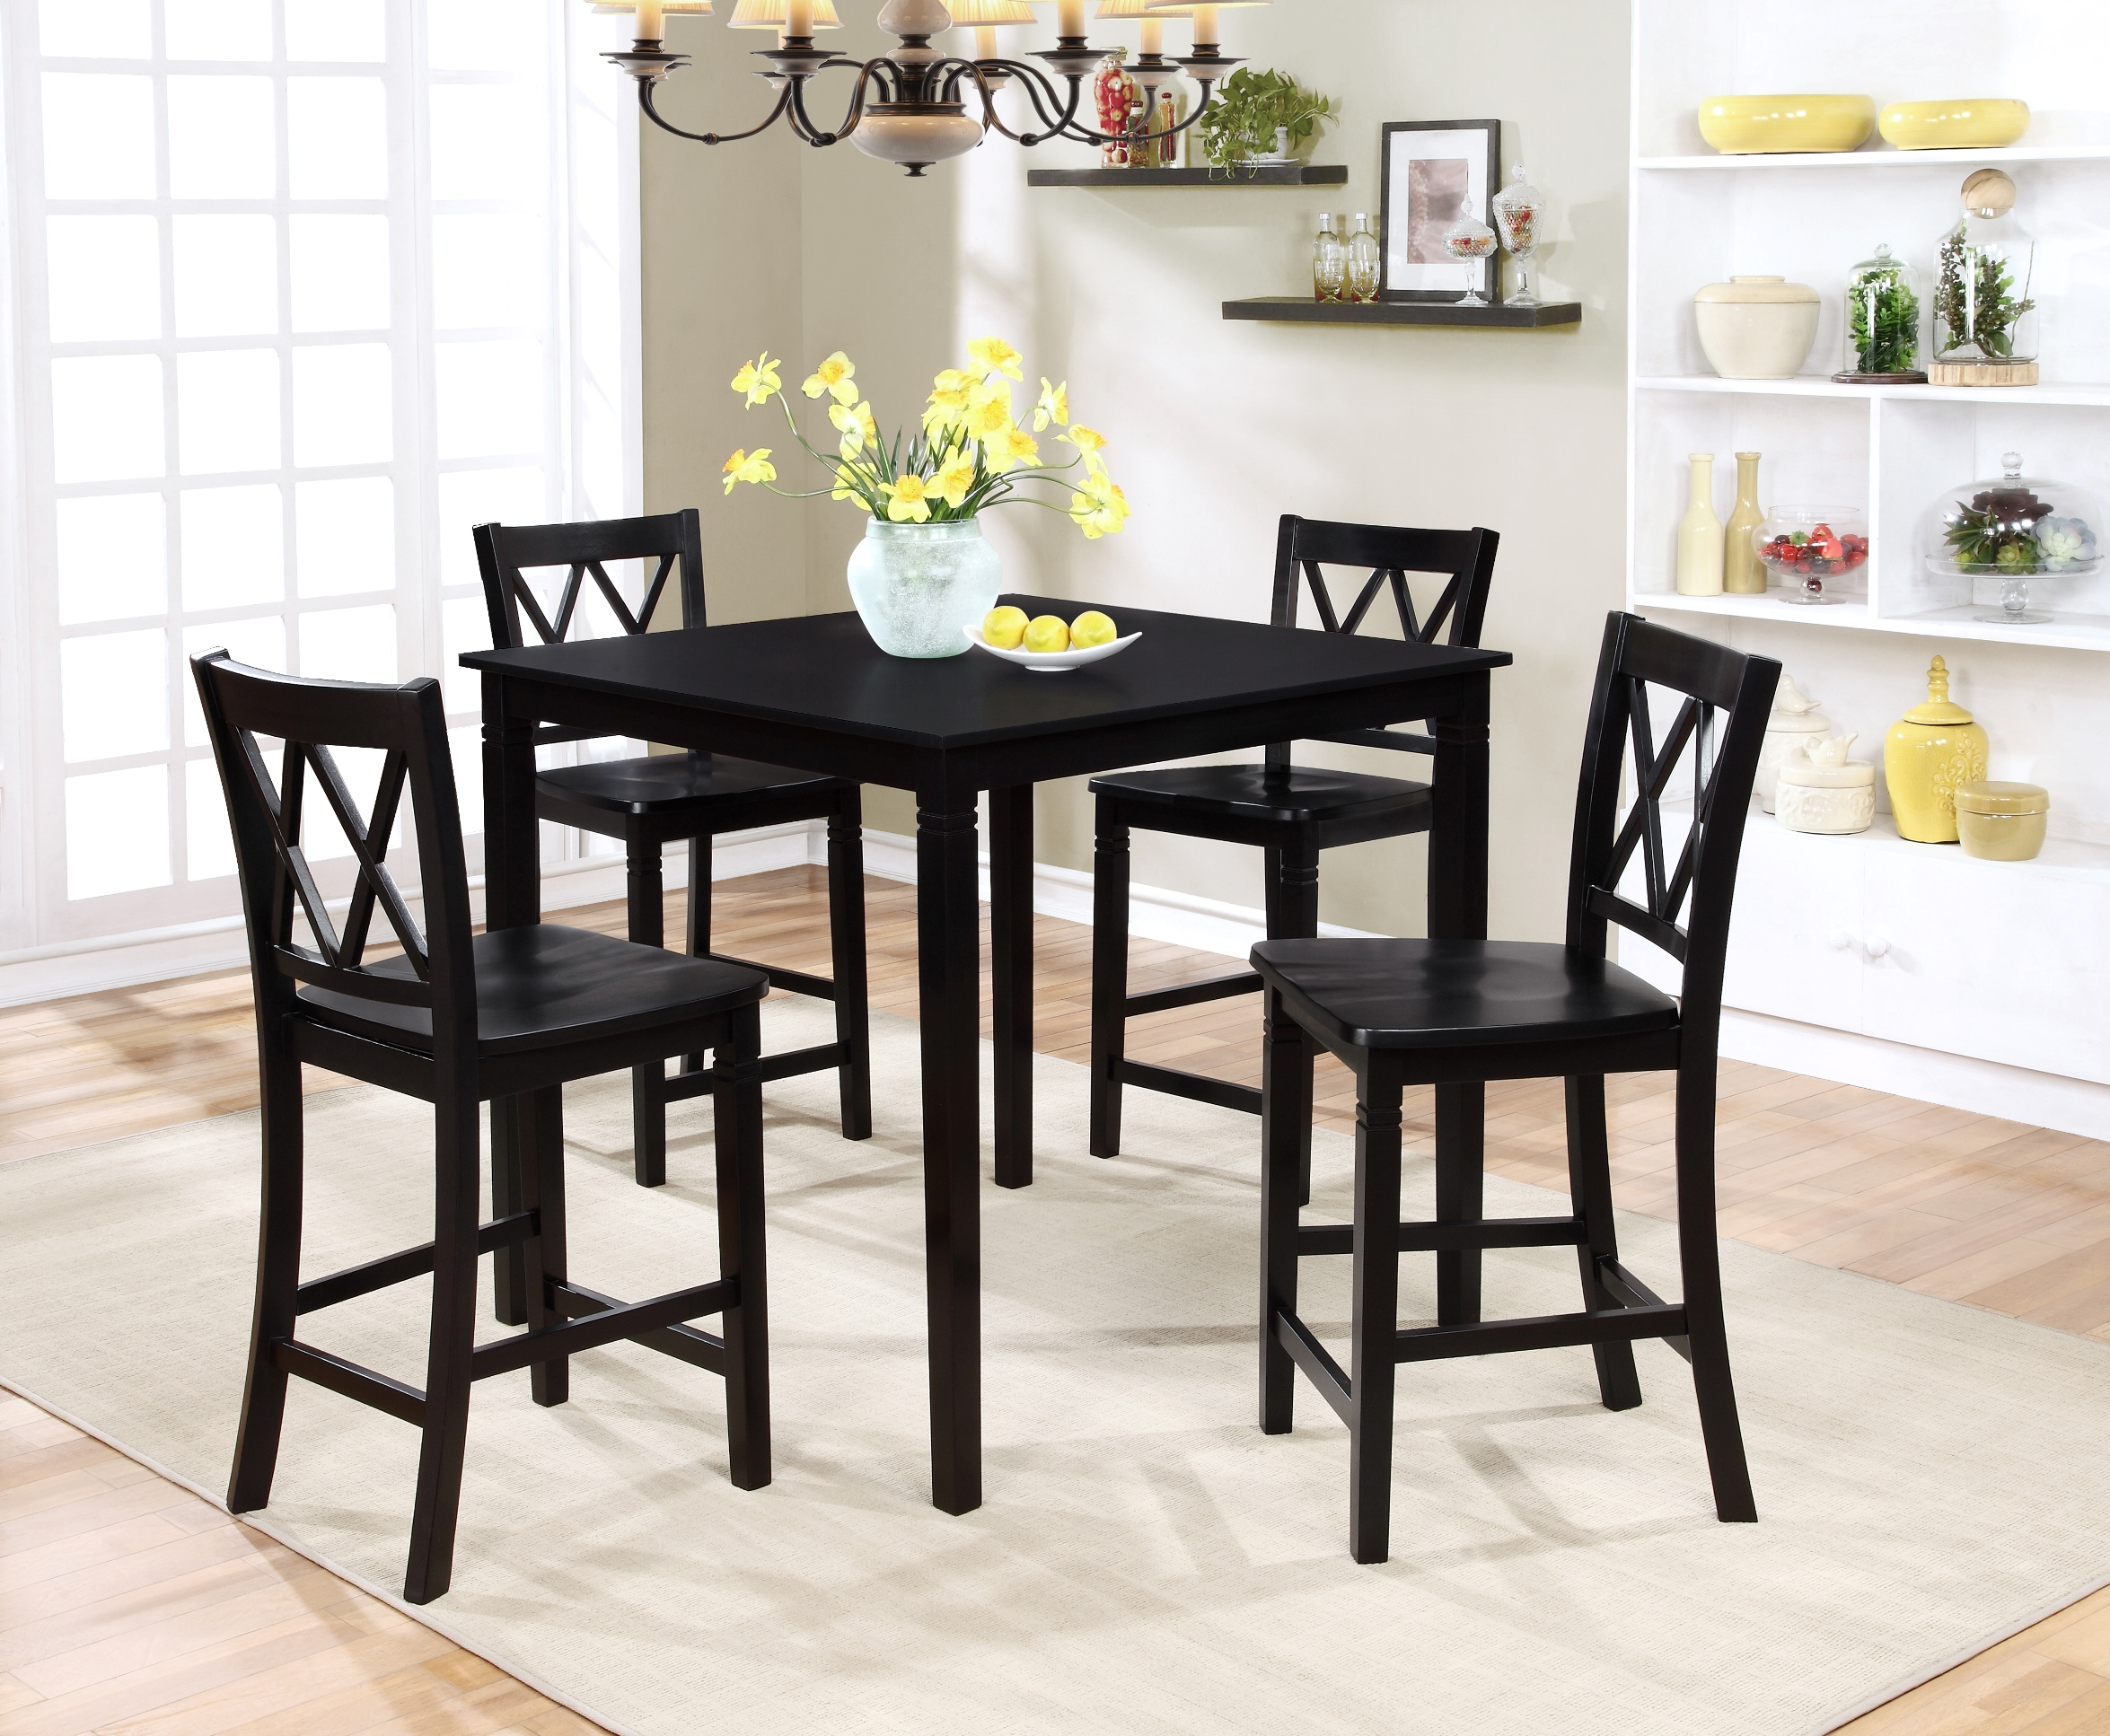 black dining table and chairs wedding chair covers hire norwich sets kitchen sears essential home dahlia 5 piece square set